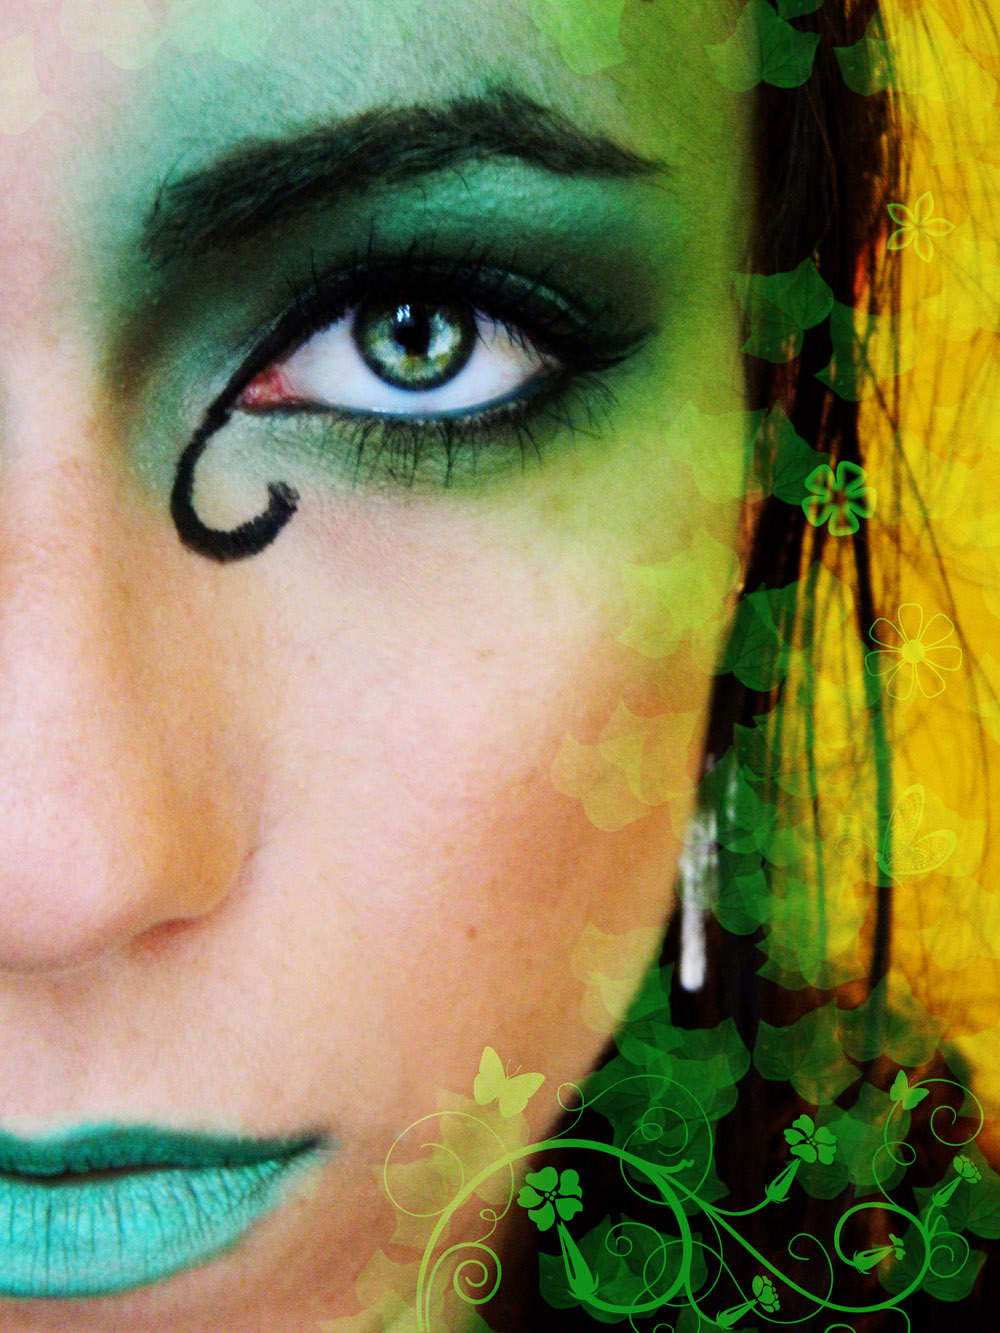 Makeup and art freak forest fairy makeup tutorial halloween another fun halloween makeup look this time forest fairy i hope youll be able to see the eyeshadows quality and intensity better on the pictures then baditri Image collections